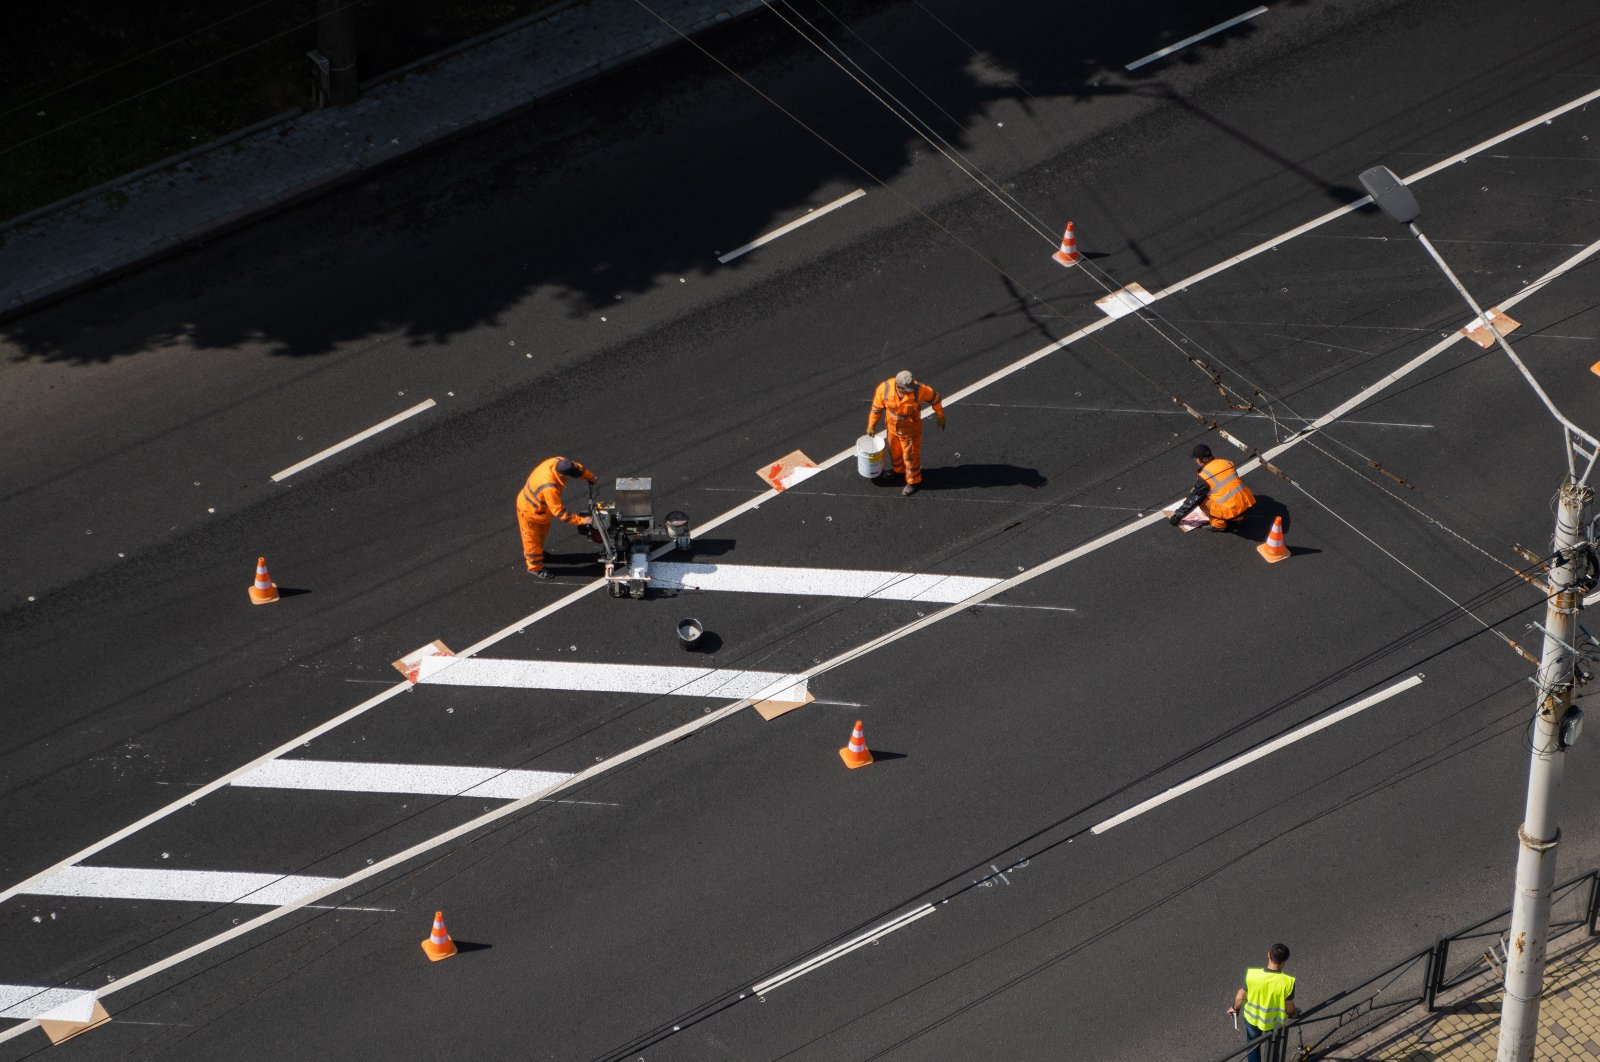 Road workers paint white lines on the road during road construction, Kyiv, Ukraine, May 25, 2020. (Shutterstock Photo)